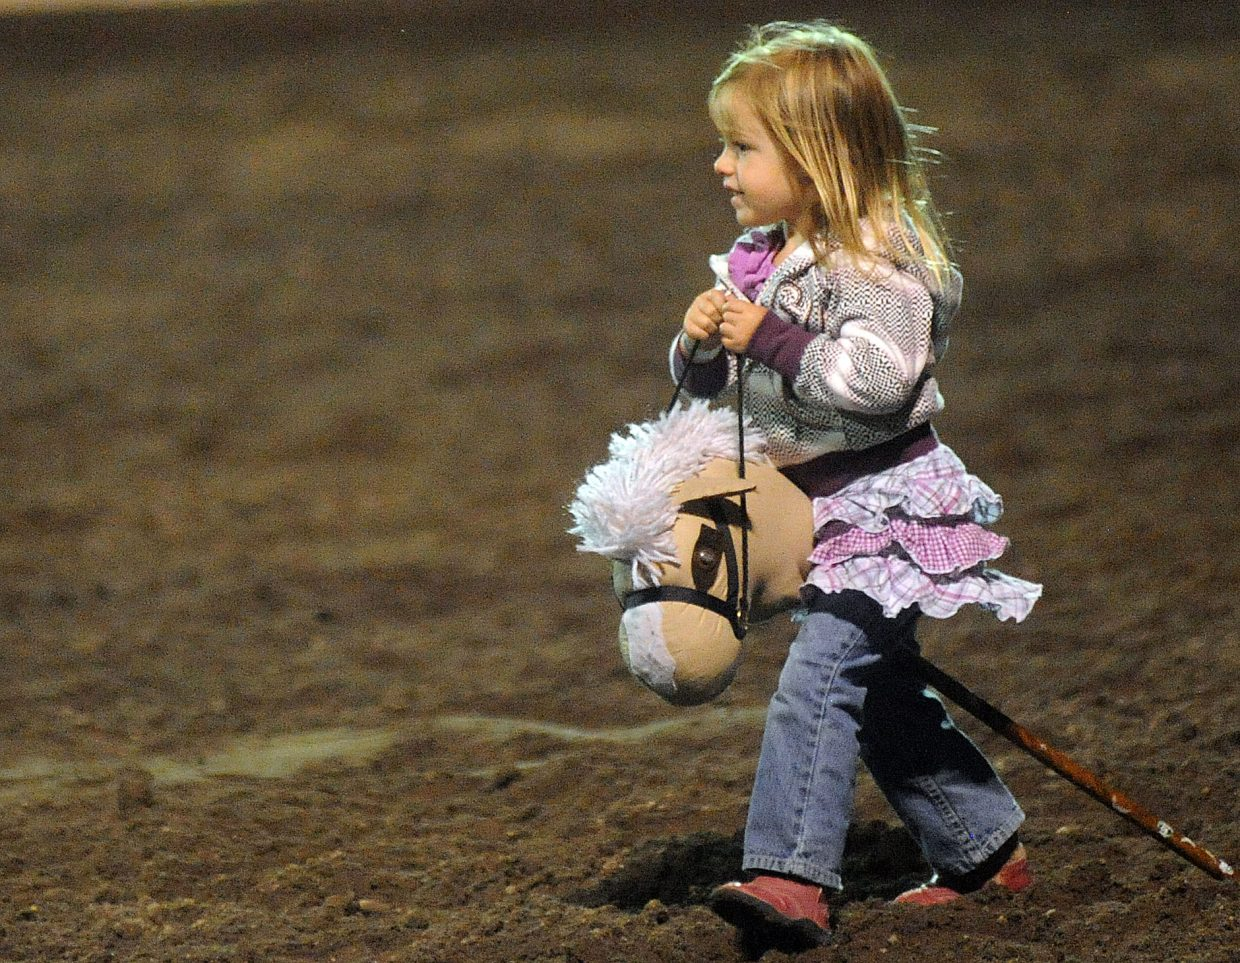 Only one calf scramble competitor thought to bring her own horse Saturday at the rodeo in Steamboat Springs.